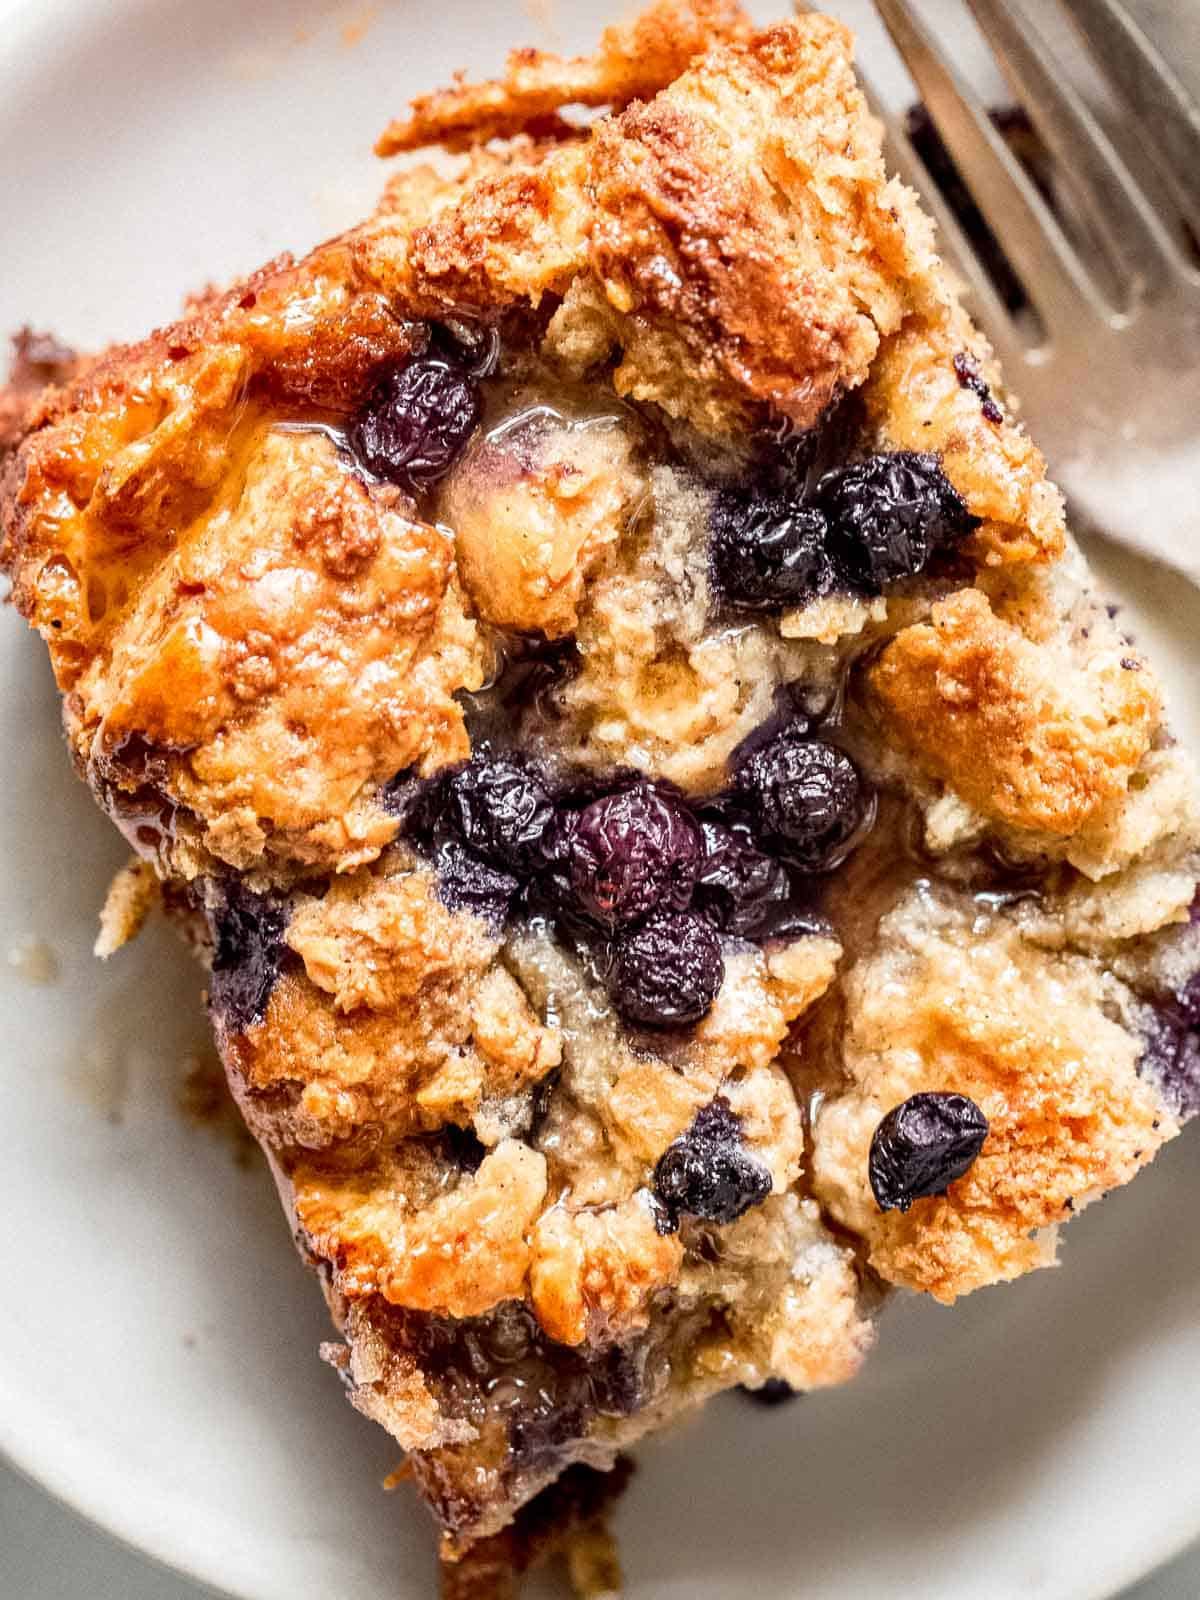 A slice of blueberry bread pudding on a plate.